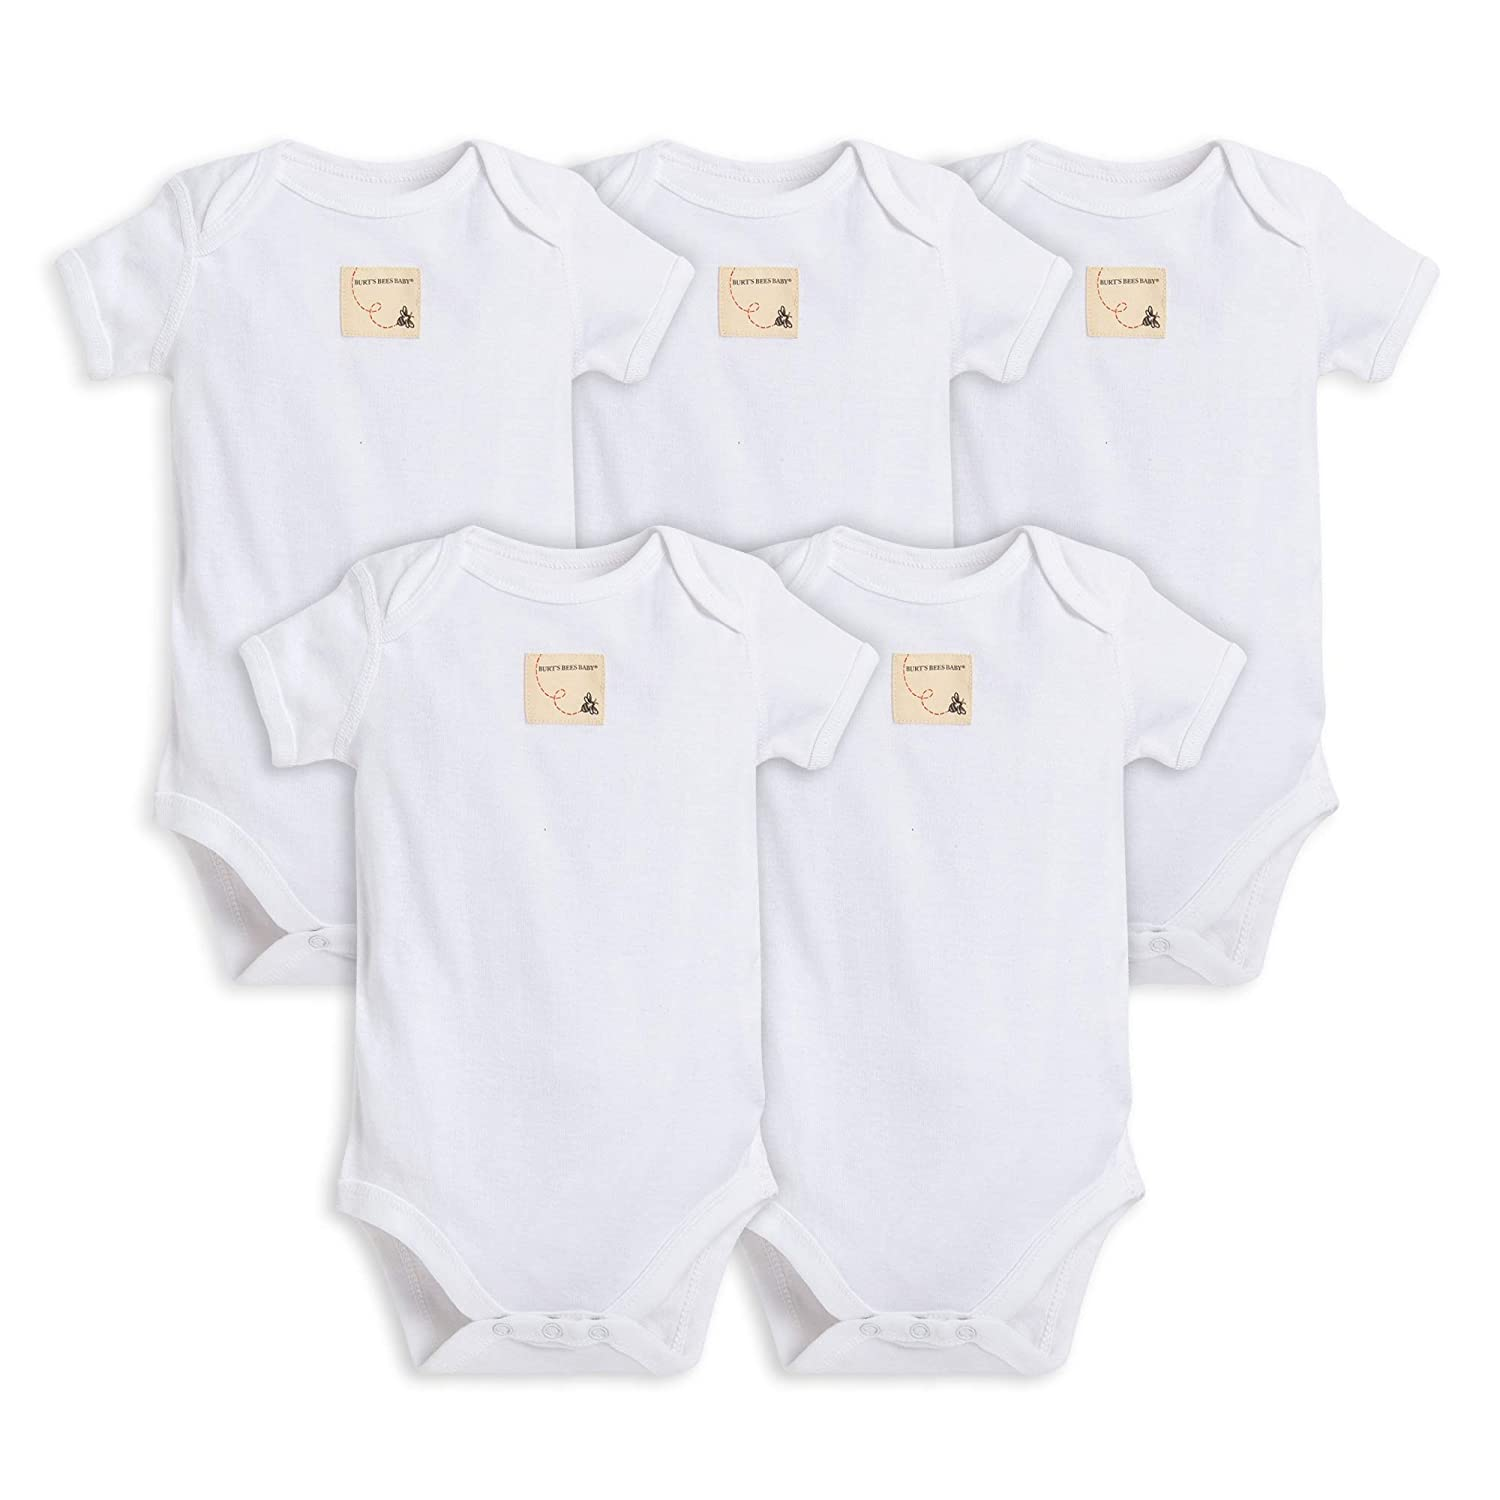 Burt's Bees Baby - Unisex Baby Bodysuits, 5-Pack Long & Short-Sleeve One-Piece Bodysuits, Organic Cotton